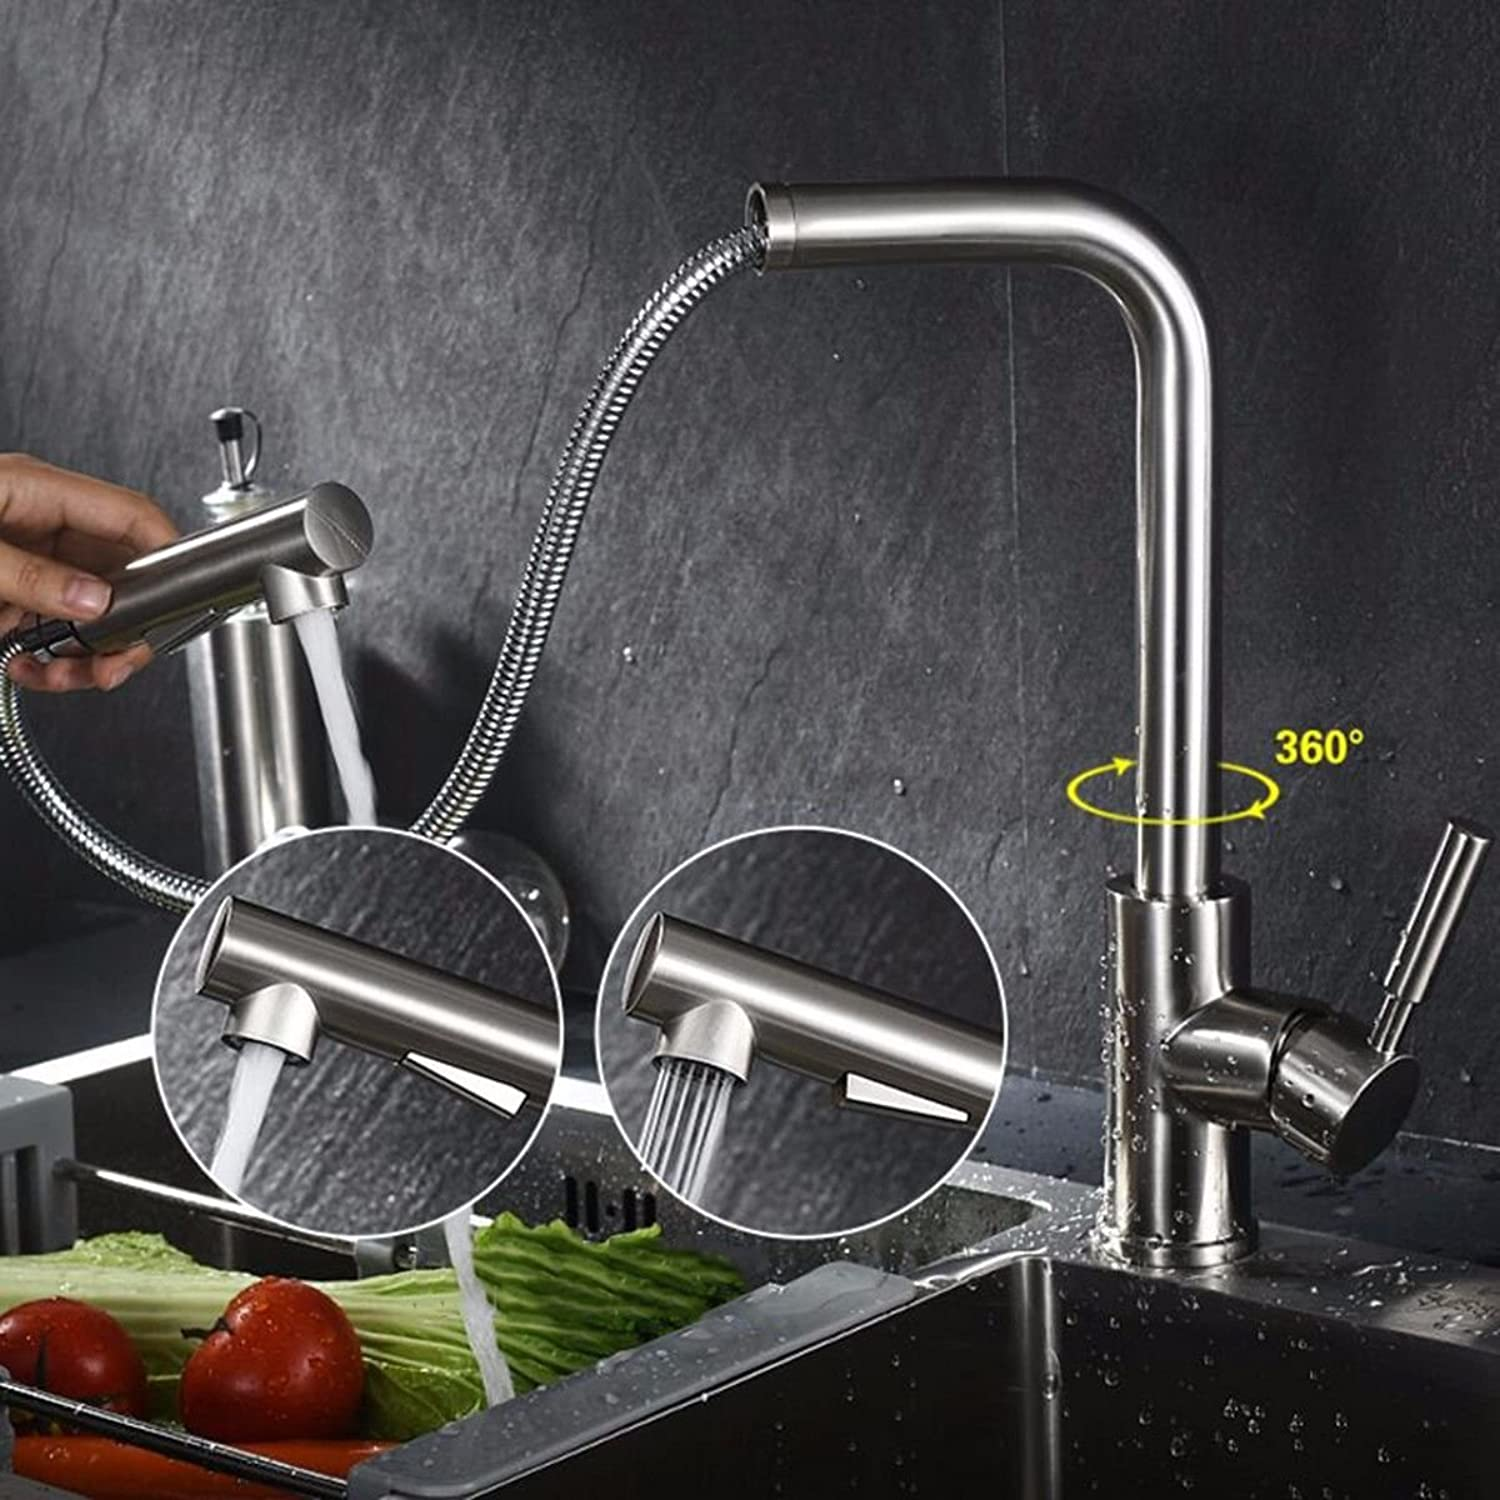 MulFaucet Kitchen Pull-Out Faucet hot and Cold Stainless Steel Pull Telescopic Sink Sink Sink Faucet Spin B